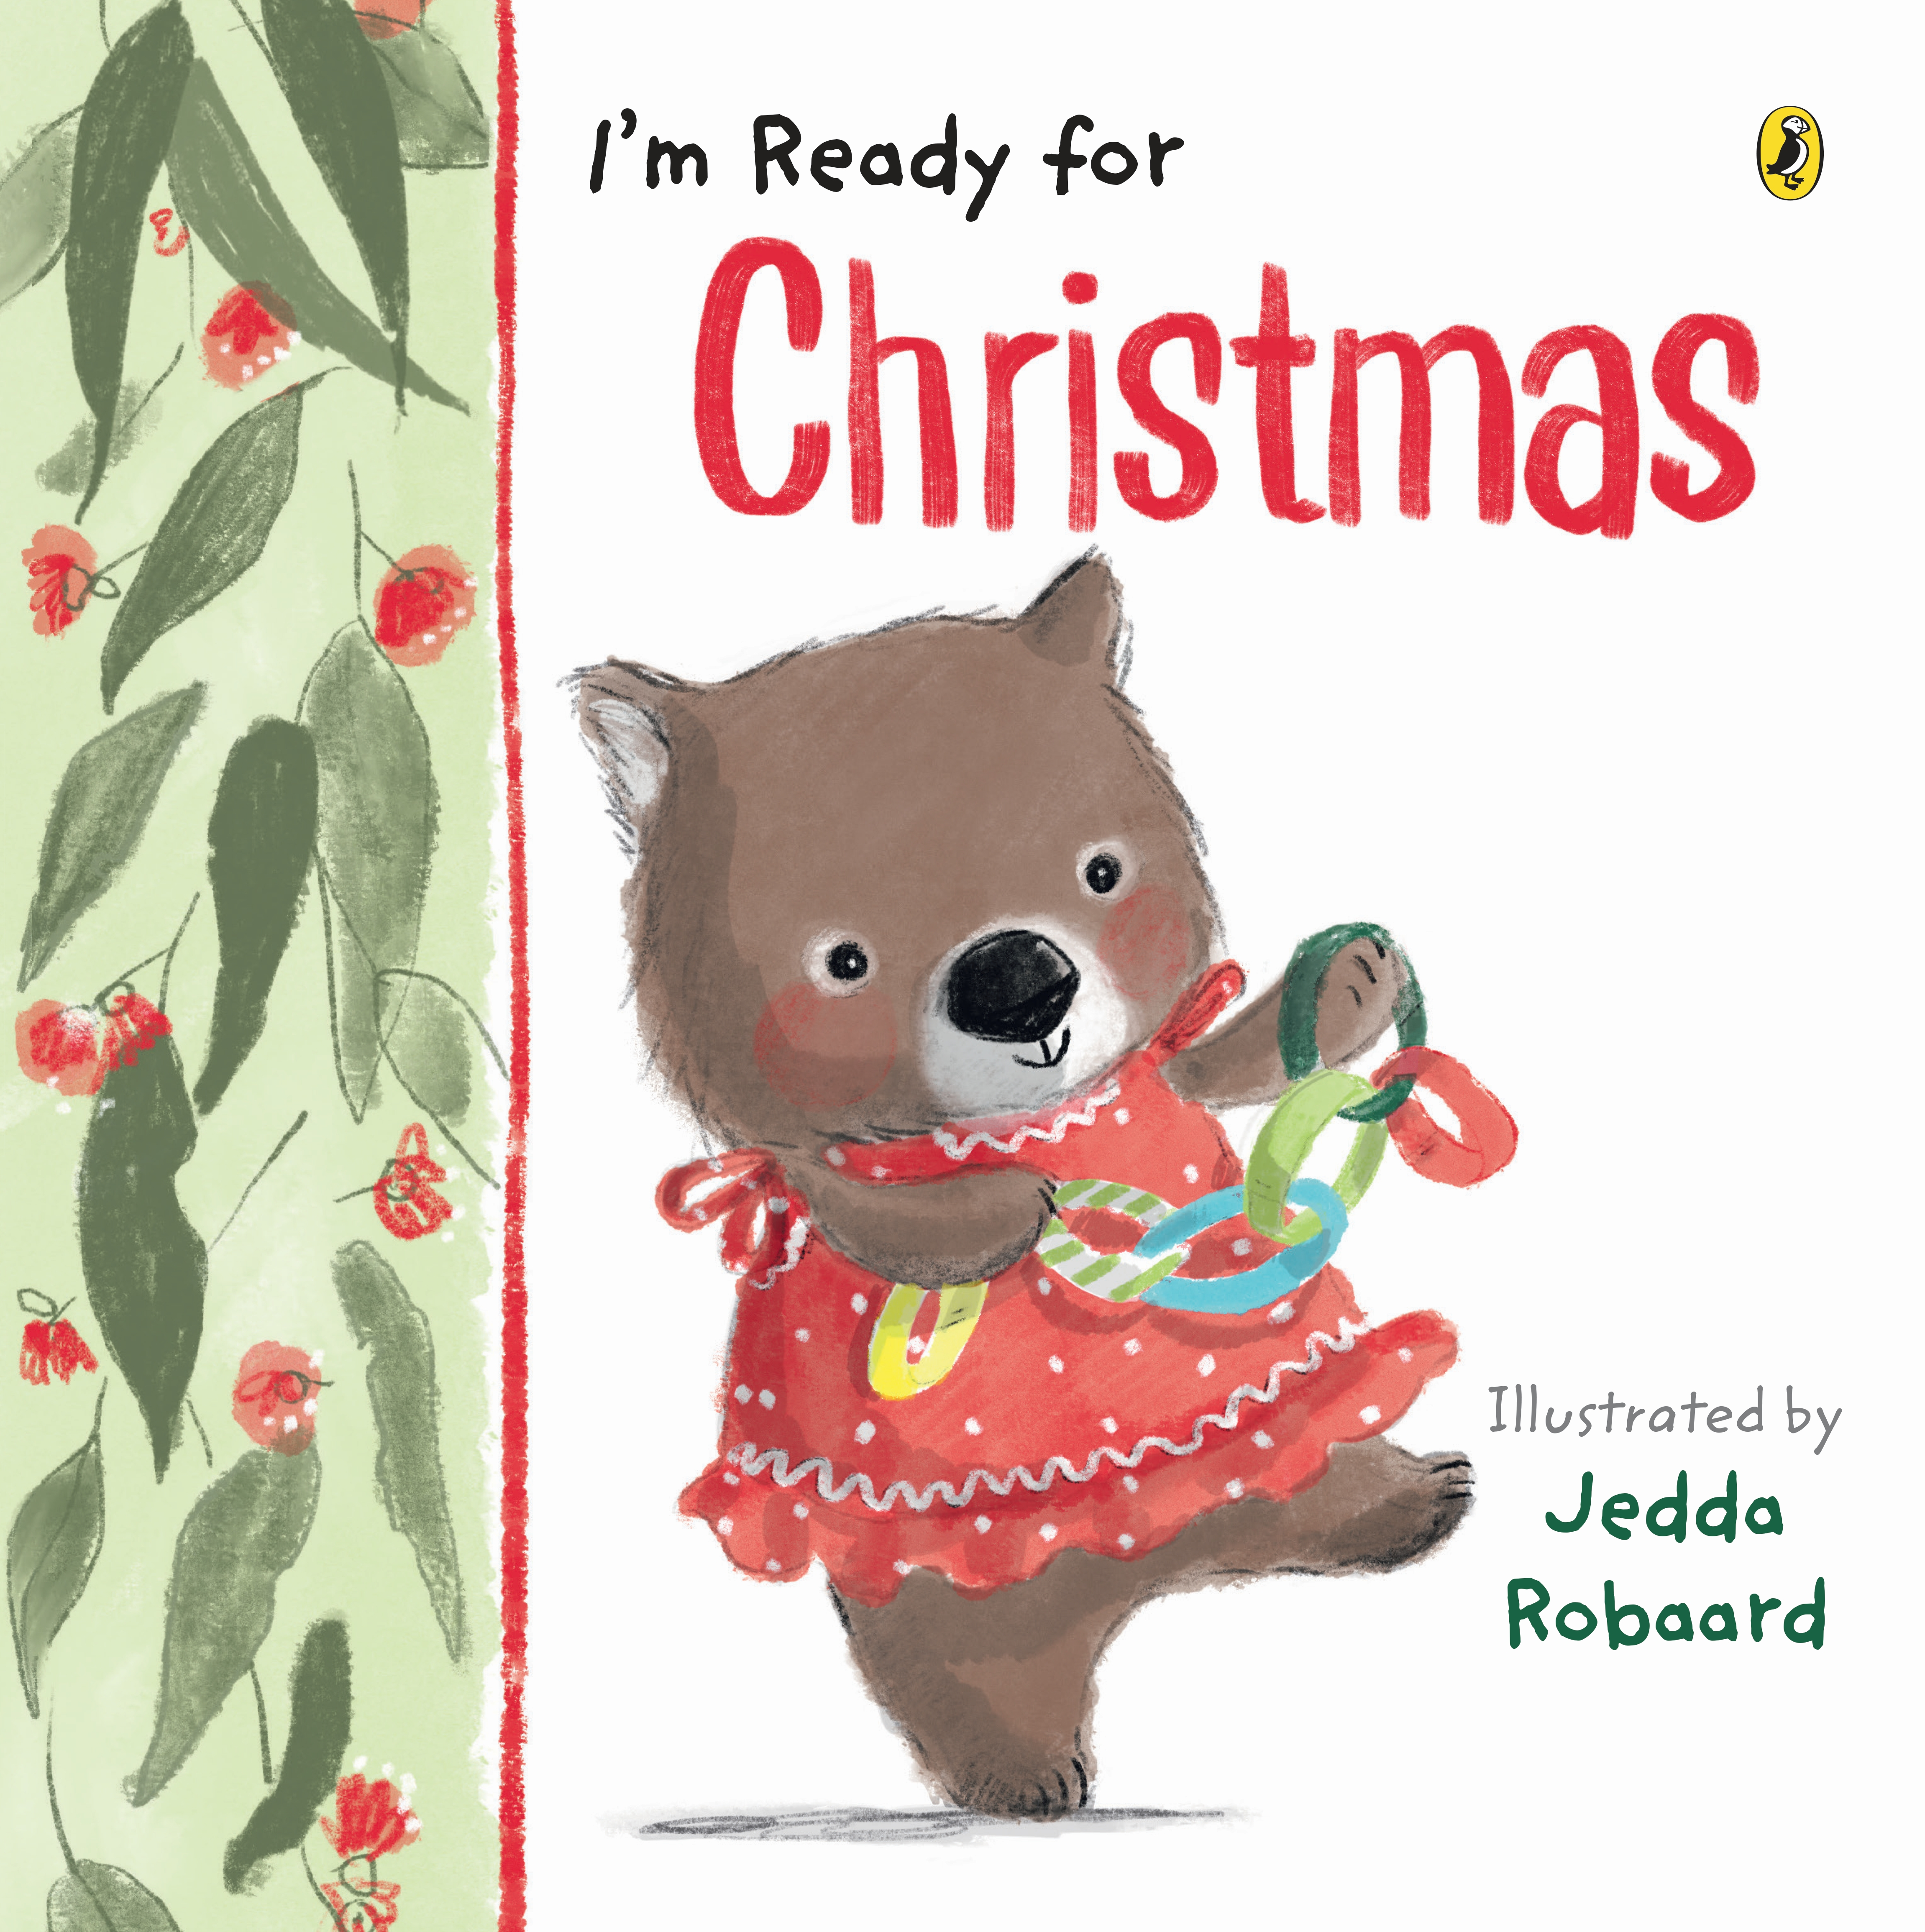 Christmas In Australia Cartoon.I M Ready For Christmas By Jedda Robaard Penguin Books